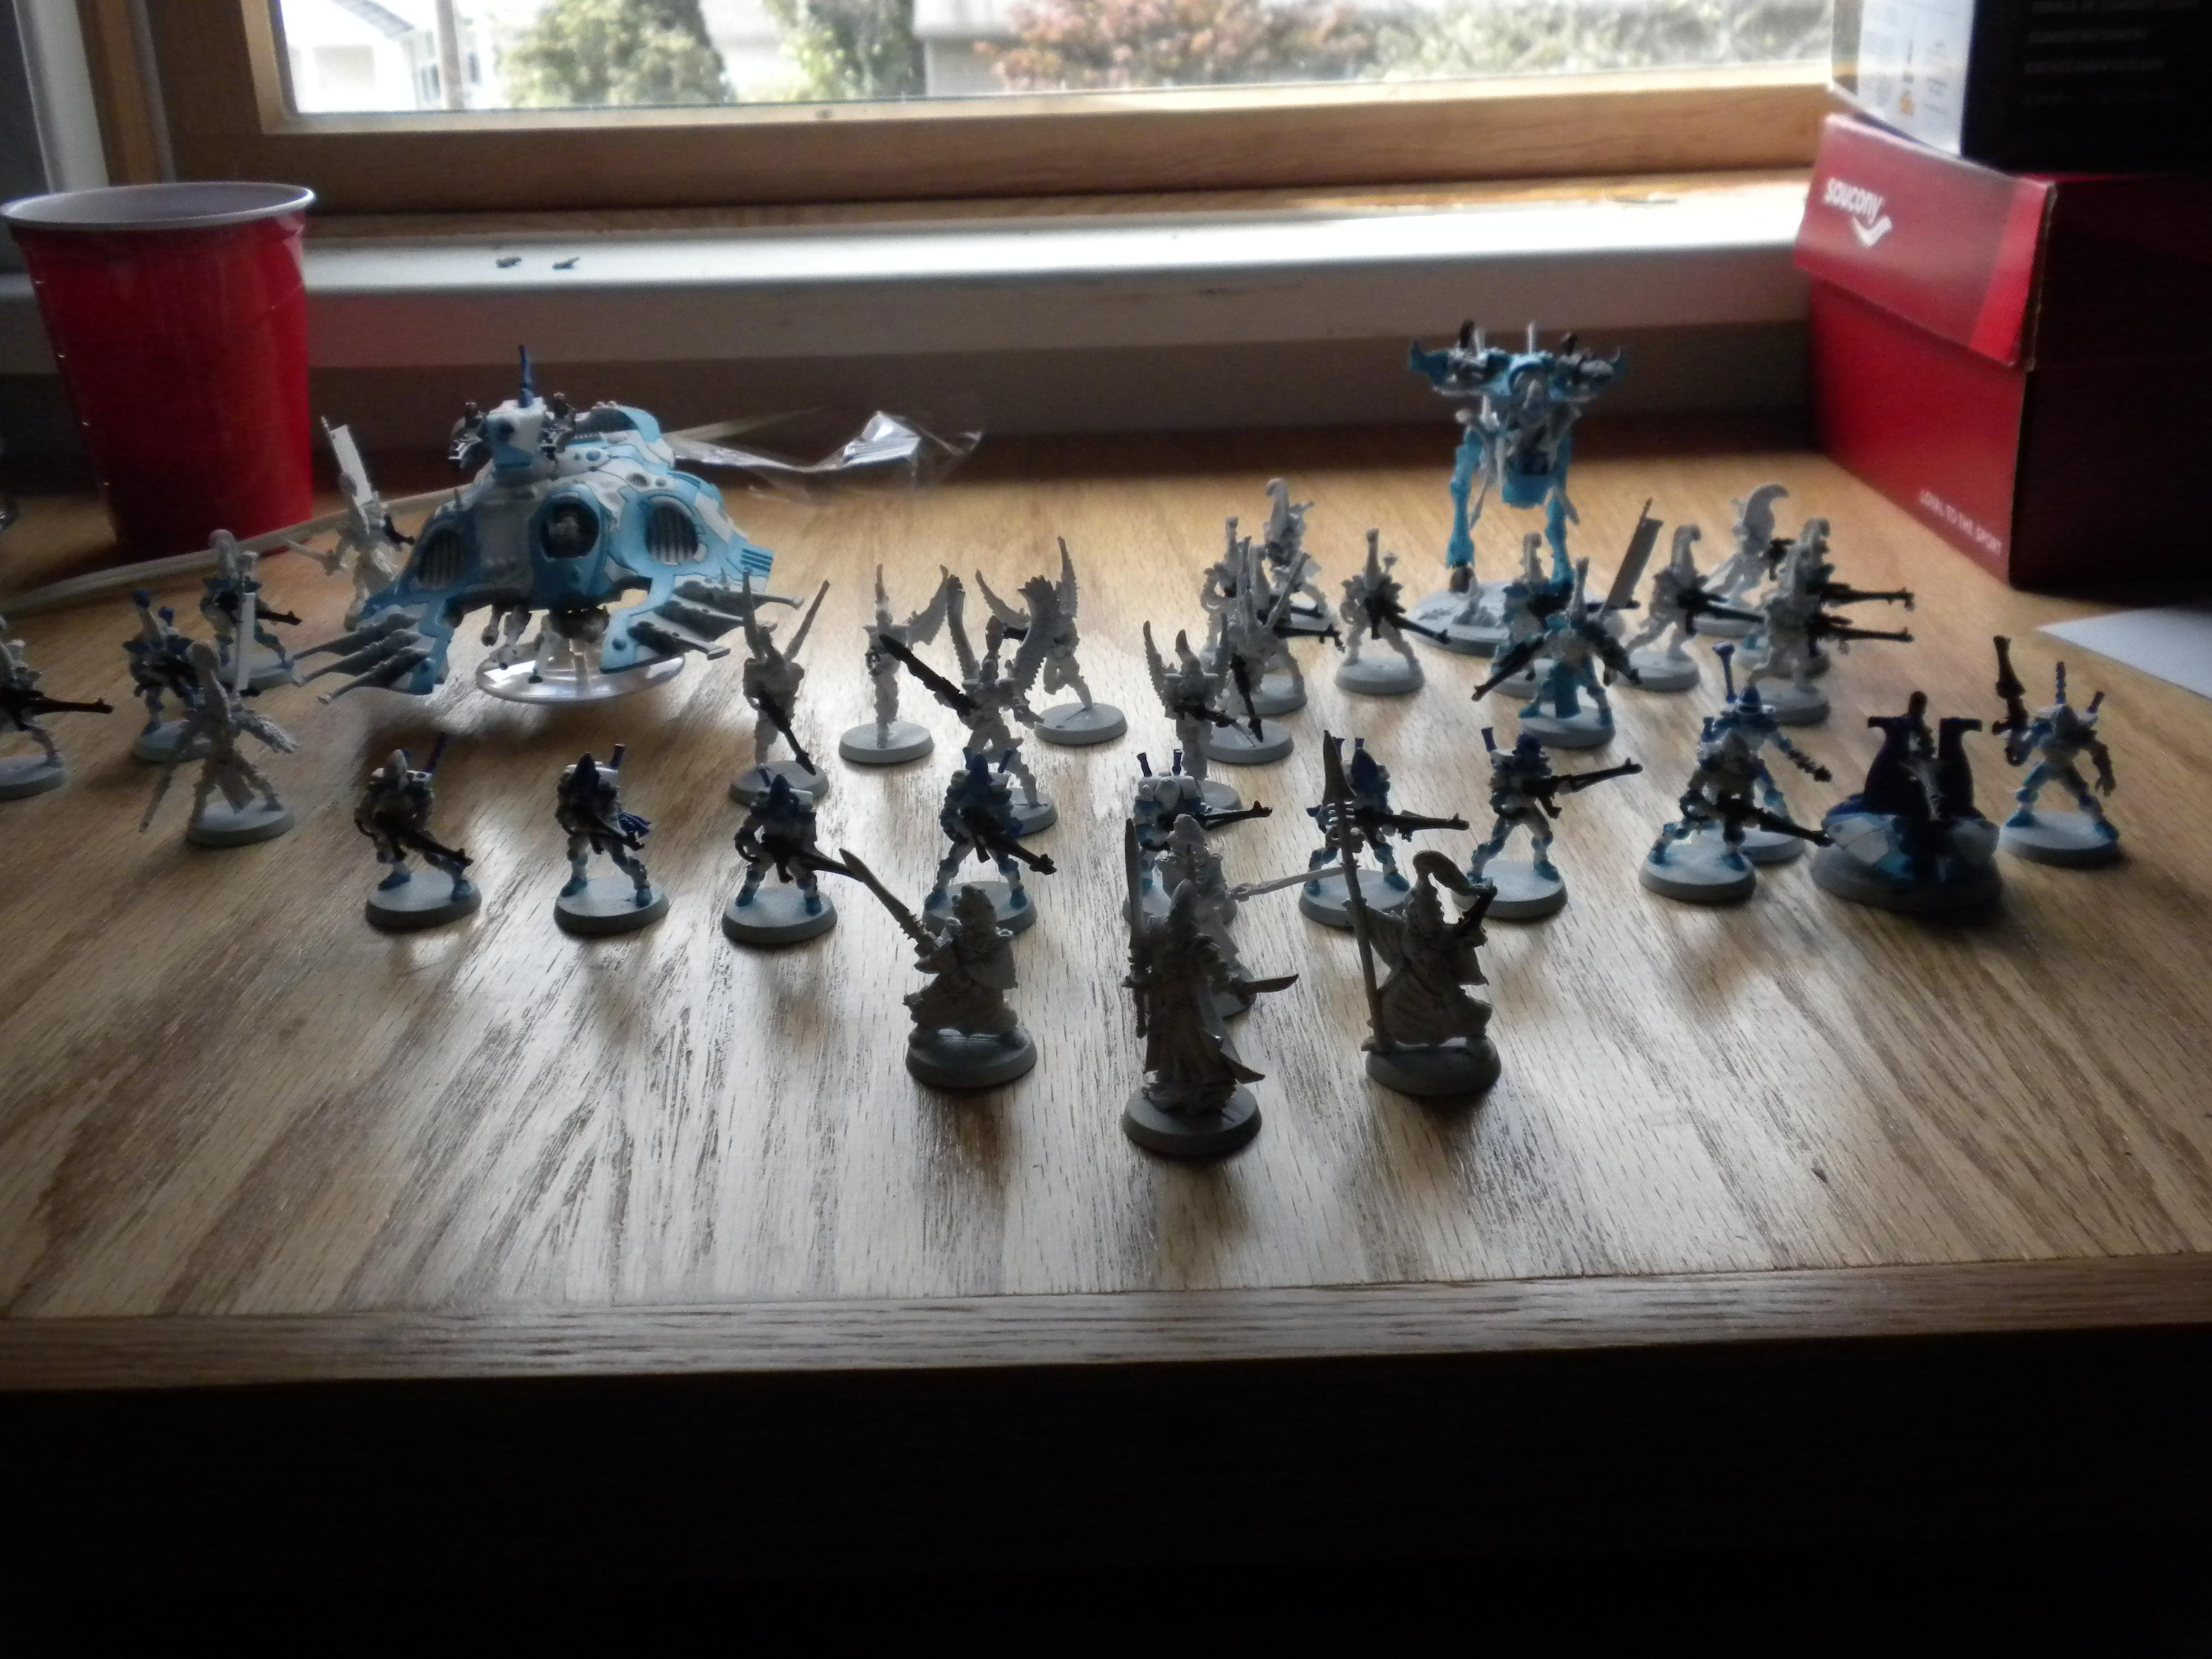 This is my army so far... I primed with white matt army painter. And the only color i really like so far are the guns